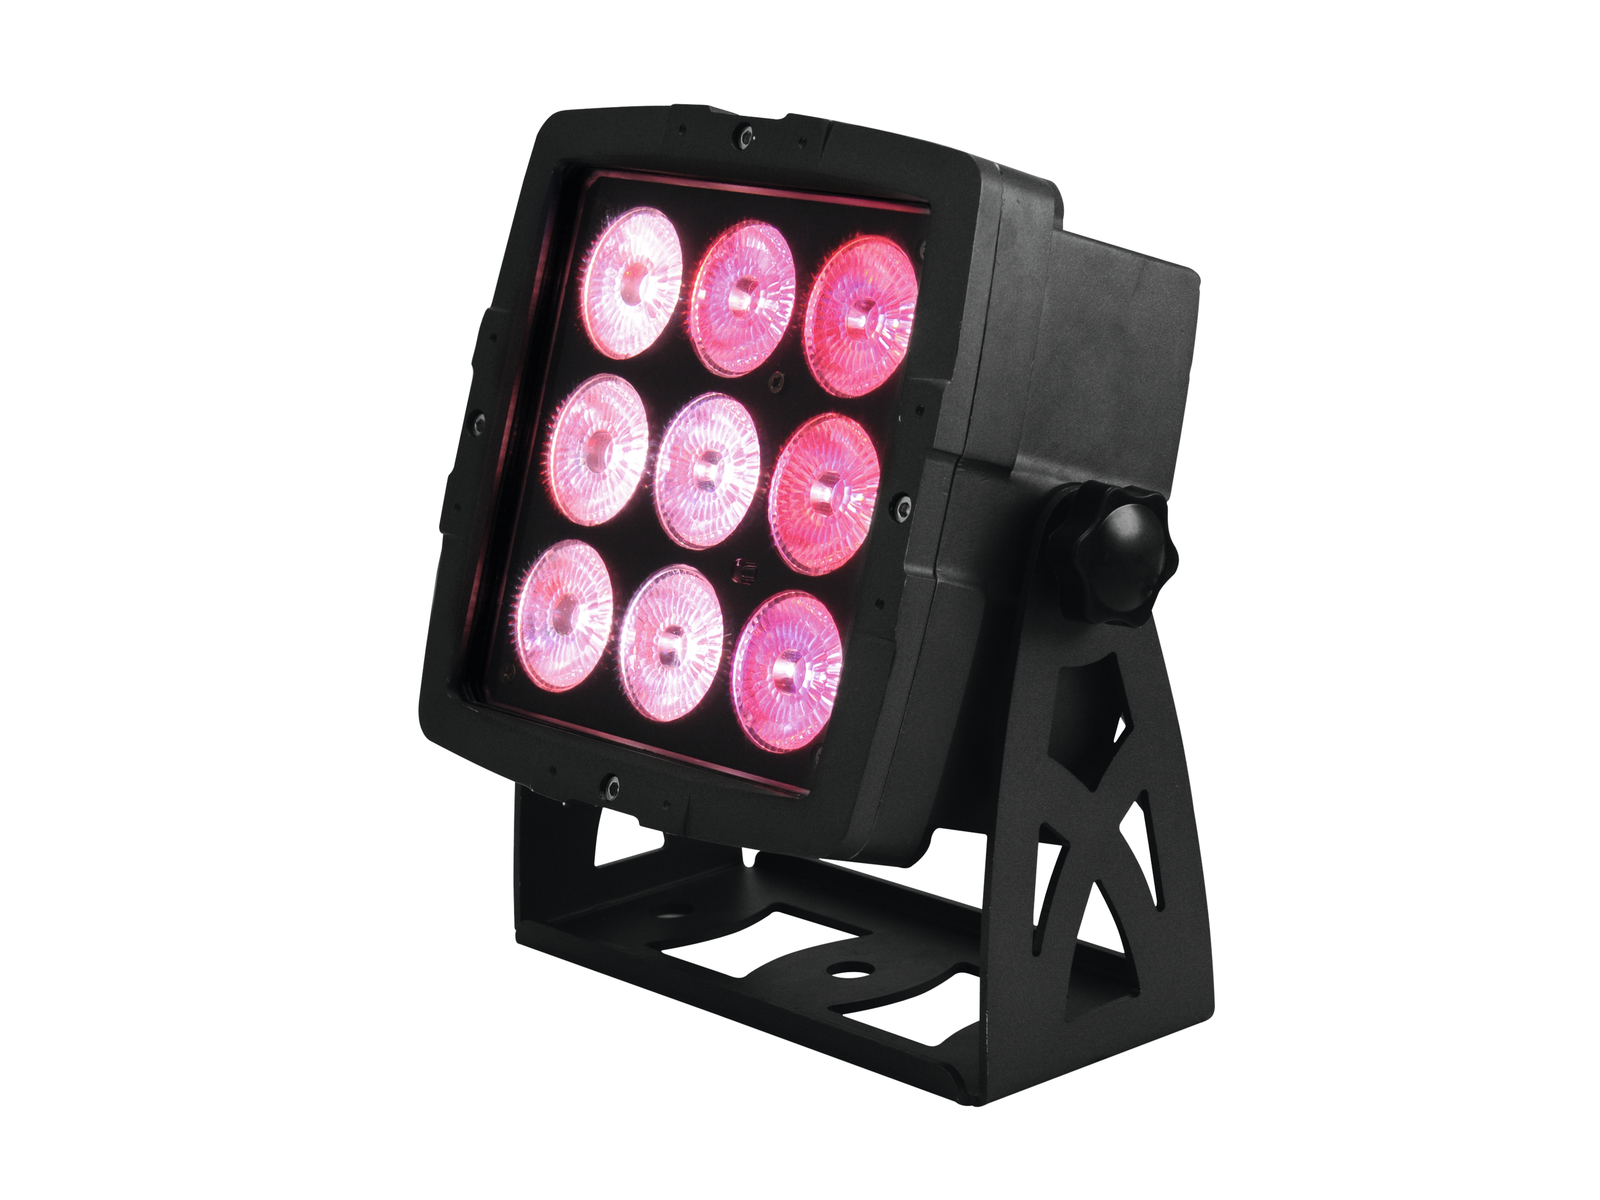 EUROLITE LED IP PAD 9x8W QLC